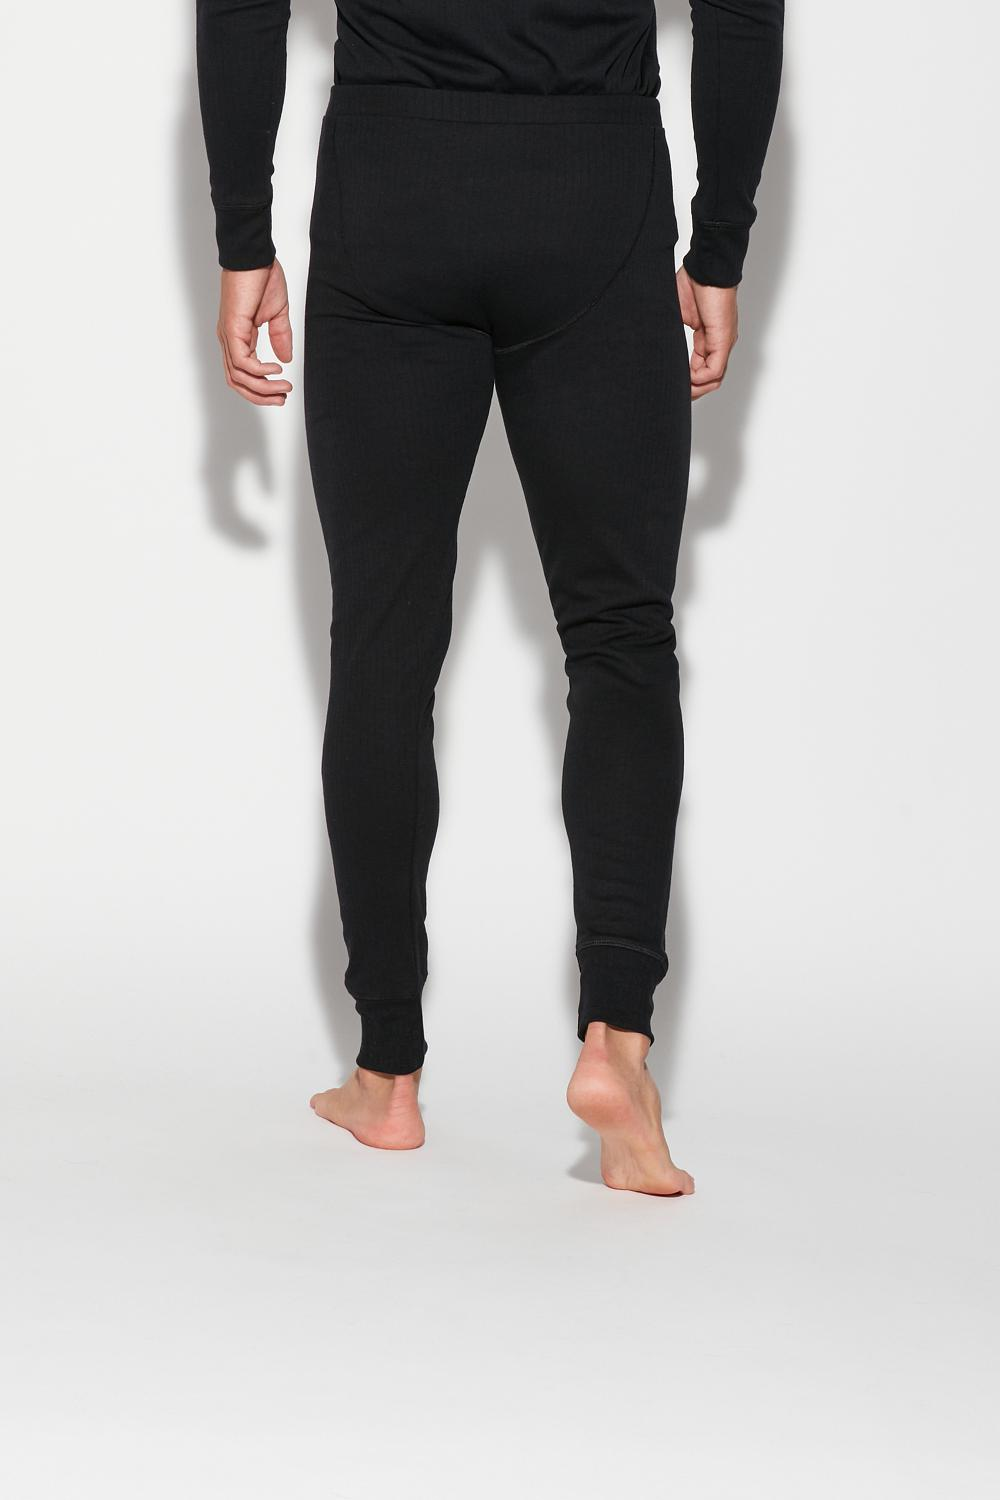 Ribbed Thick Cotton Work/Sport Trousers